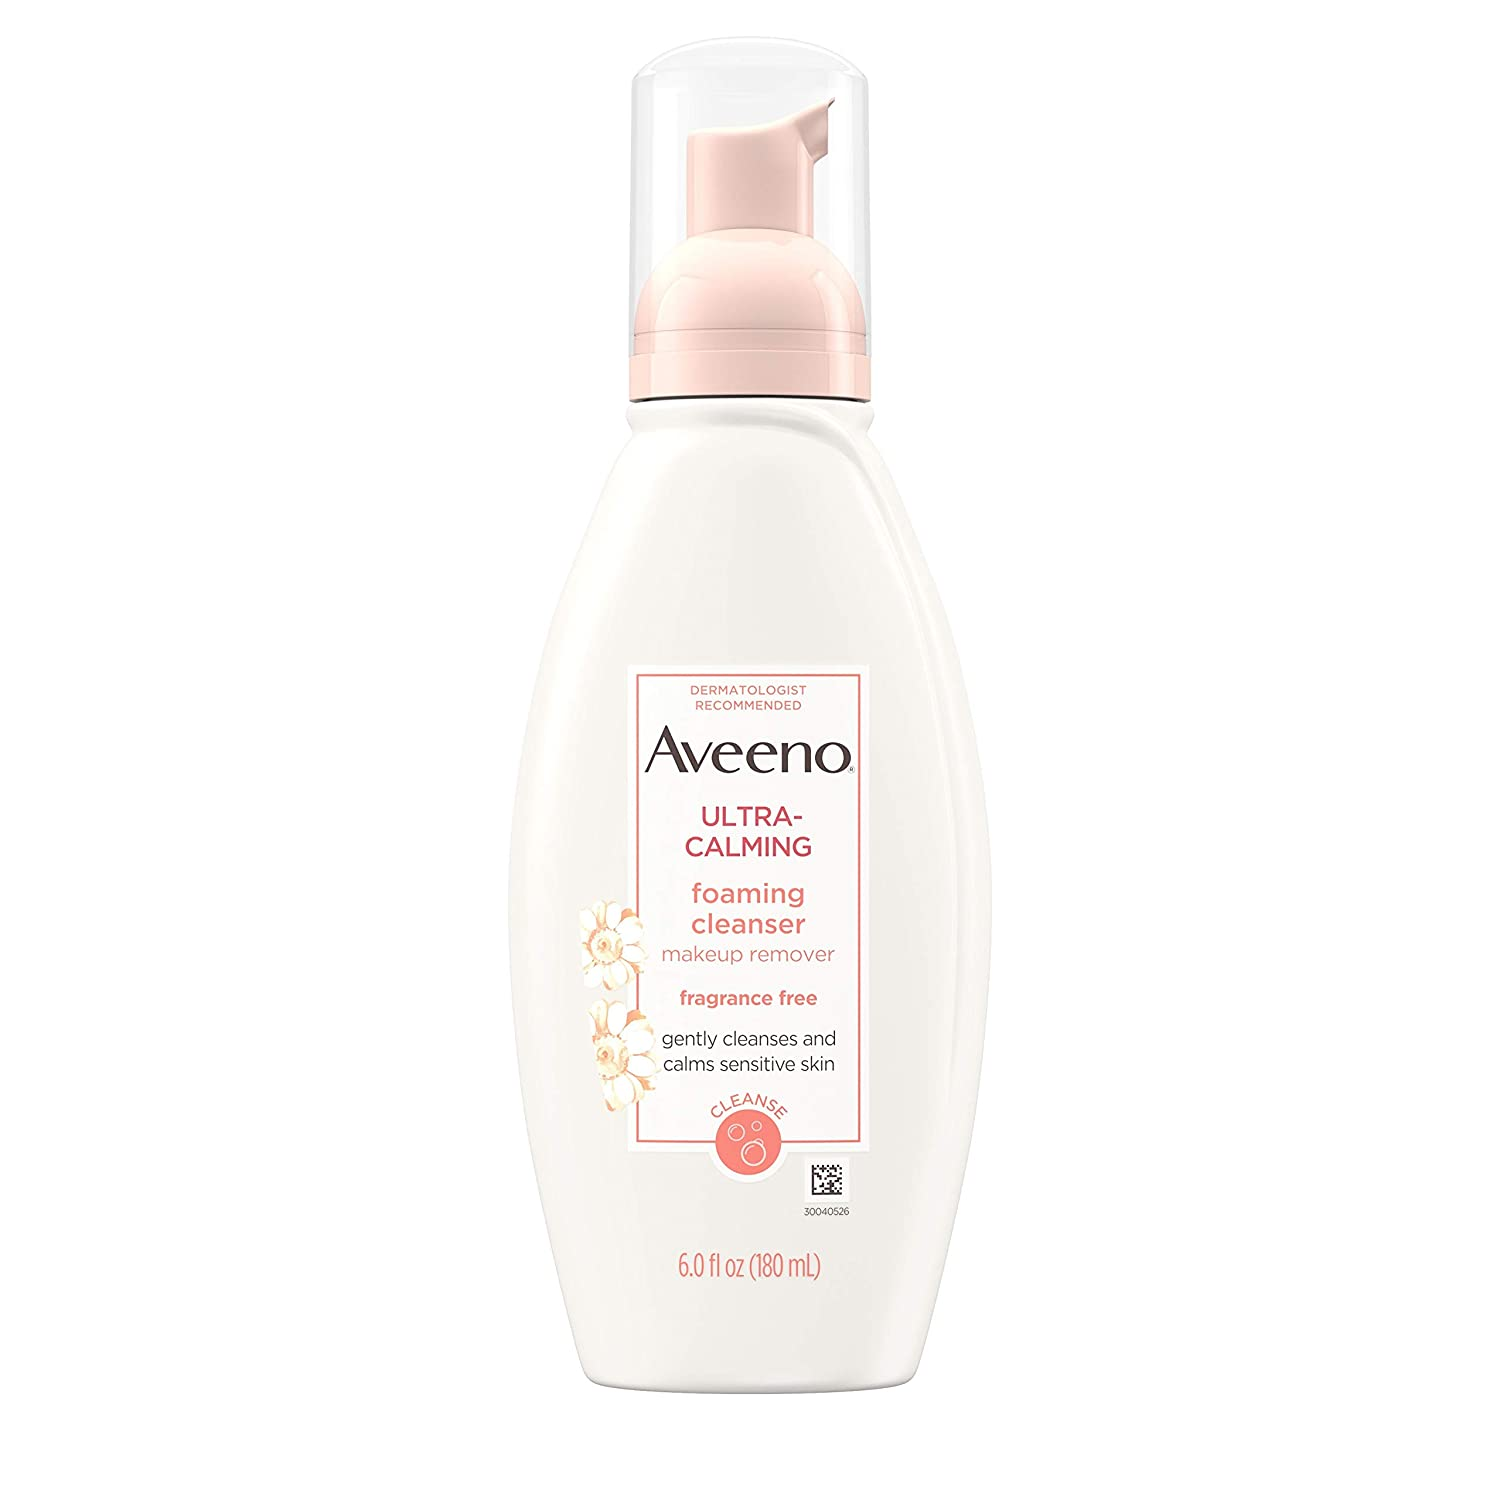 Aveeno Ultra-Calming Foaming Cleanser and Makeup Remover for Dry, Sensitive Skin, 6 fl. oz: Beauty